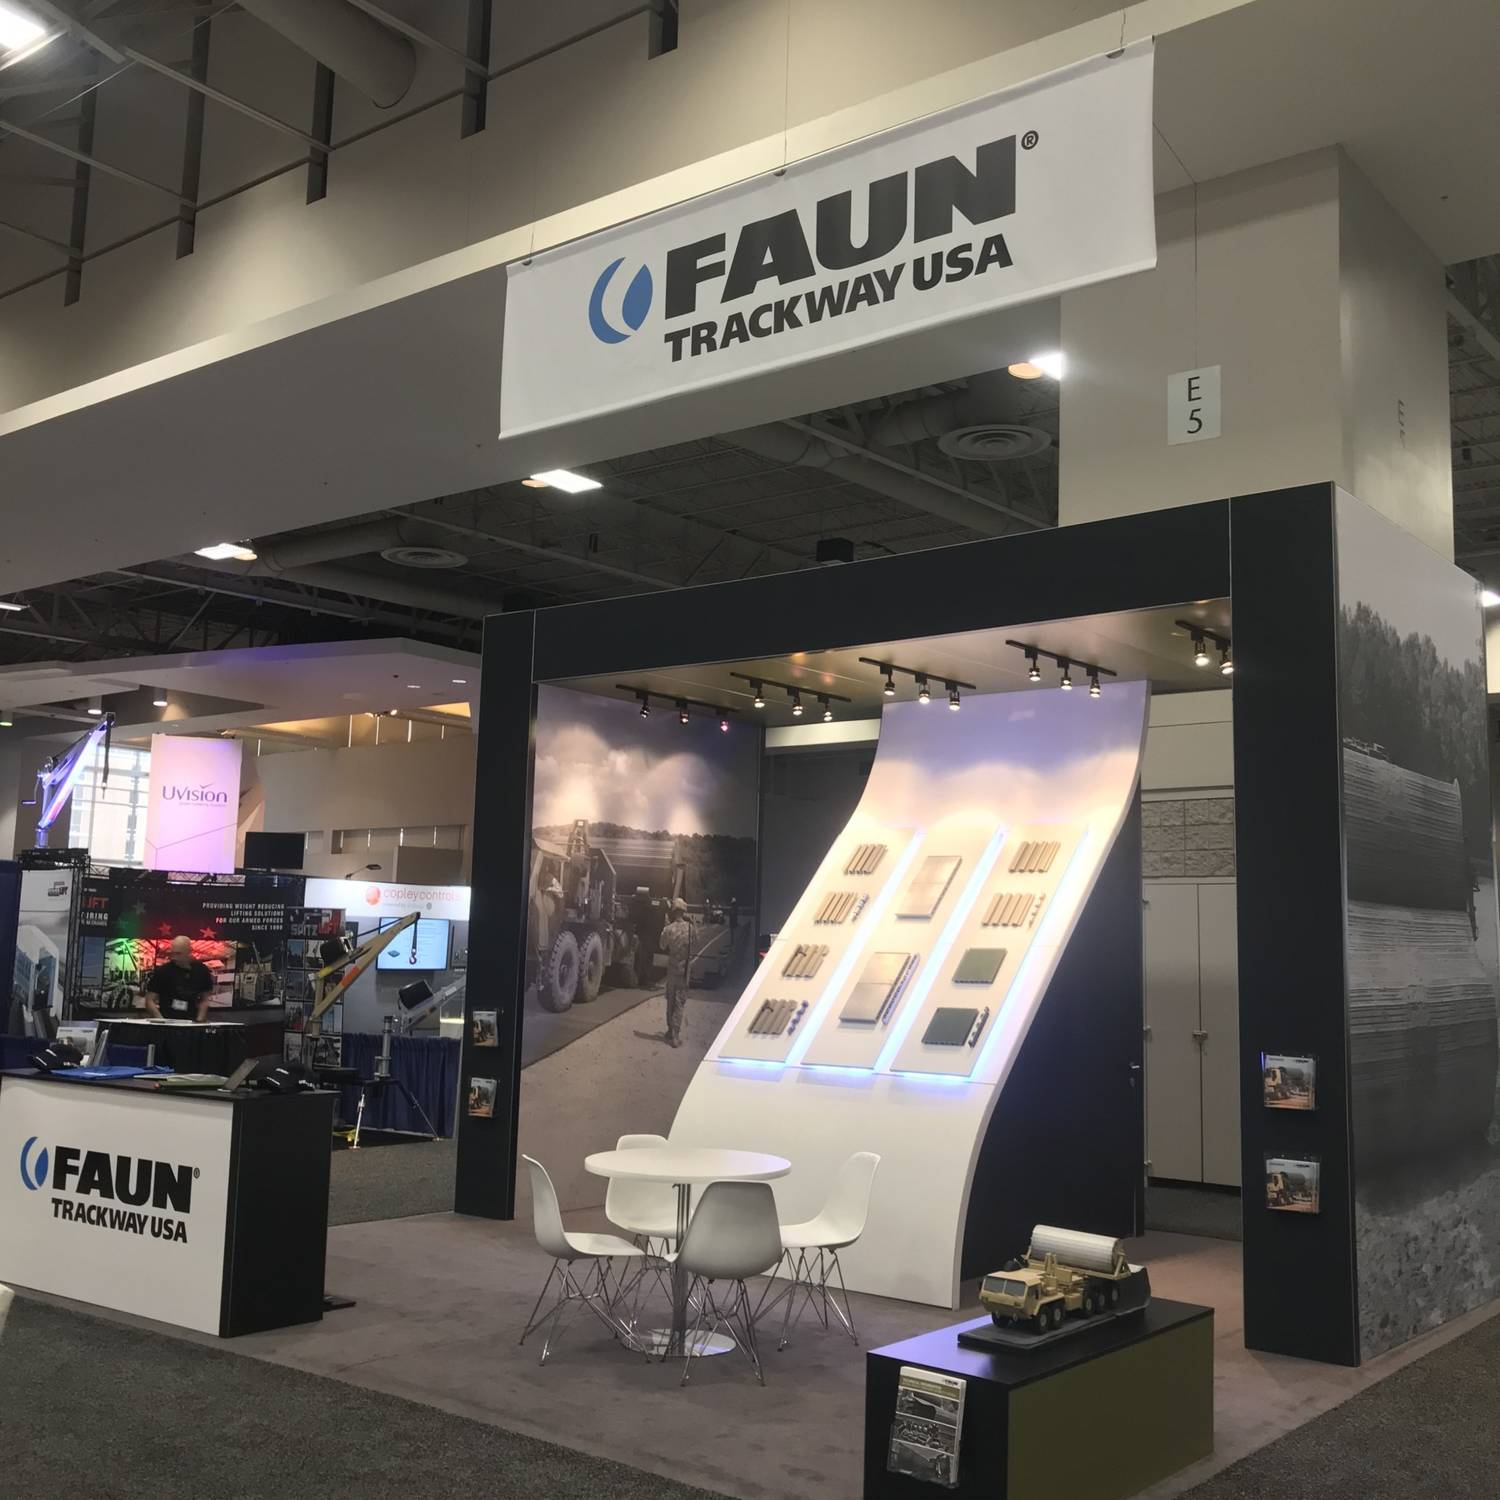 Expo Exhibition Stands Washington Dc : Ausa our best exhibition booth yet atu faun trackway usa inc